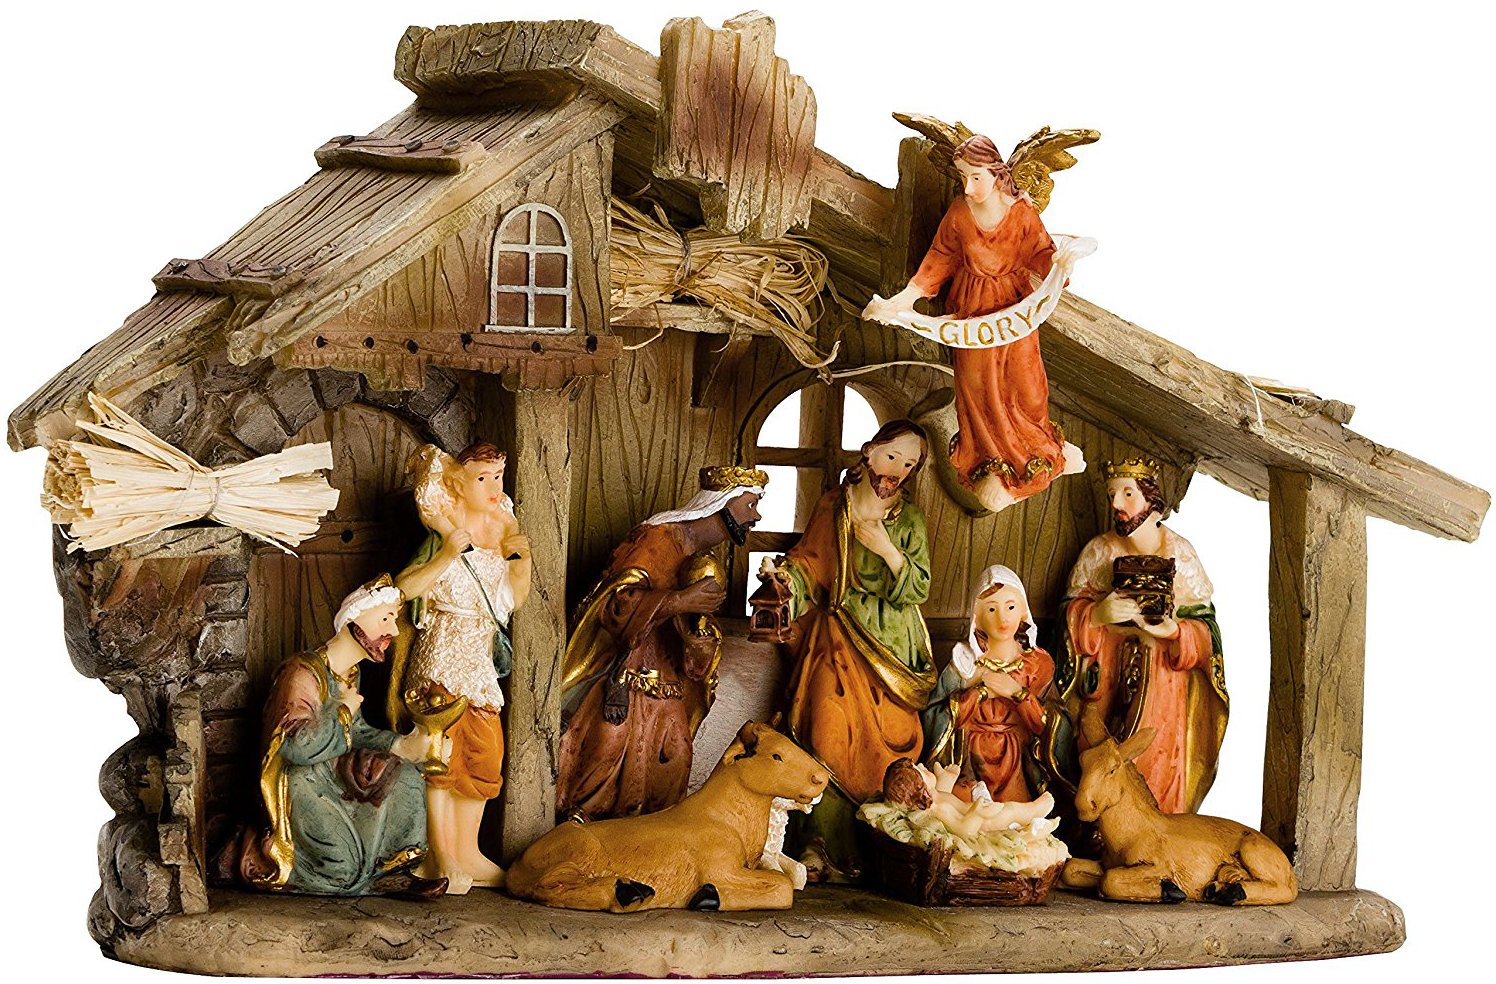 BRUBAKER Christmas Real Life Nativity Scene Set - Holiday Decoration - Stable with 11 Resin Figurines (not re-arrangeable) - Designed in Germany - Revised Package